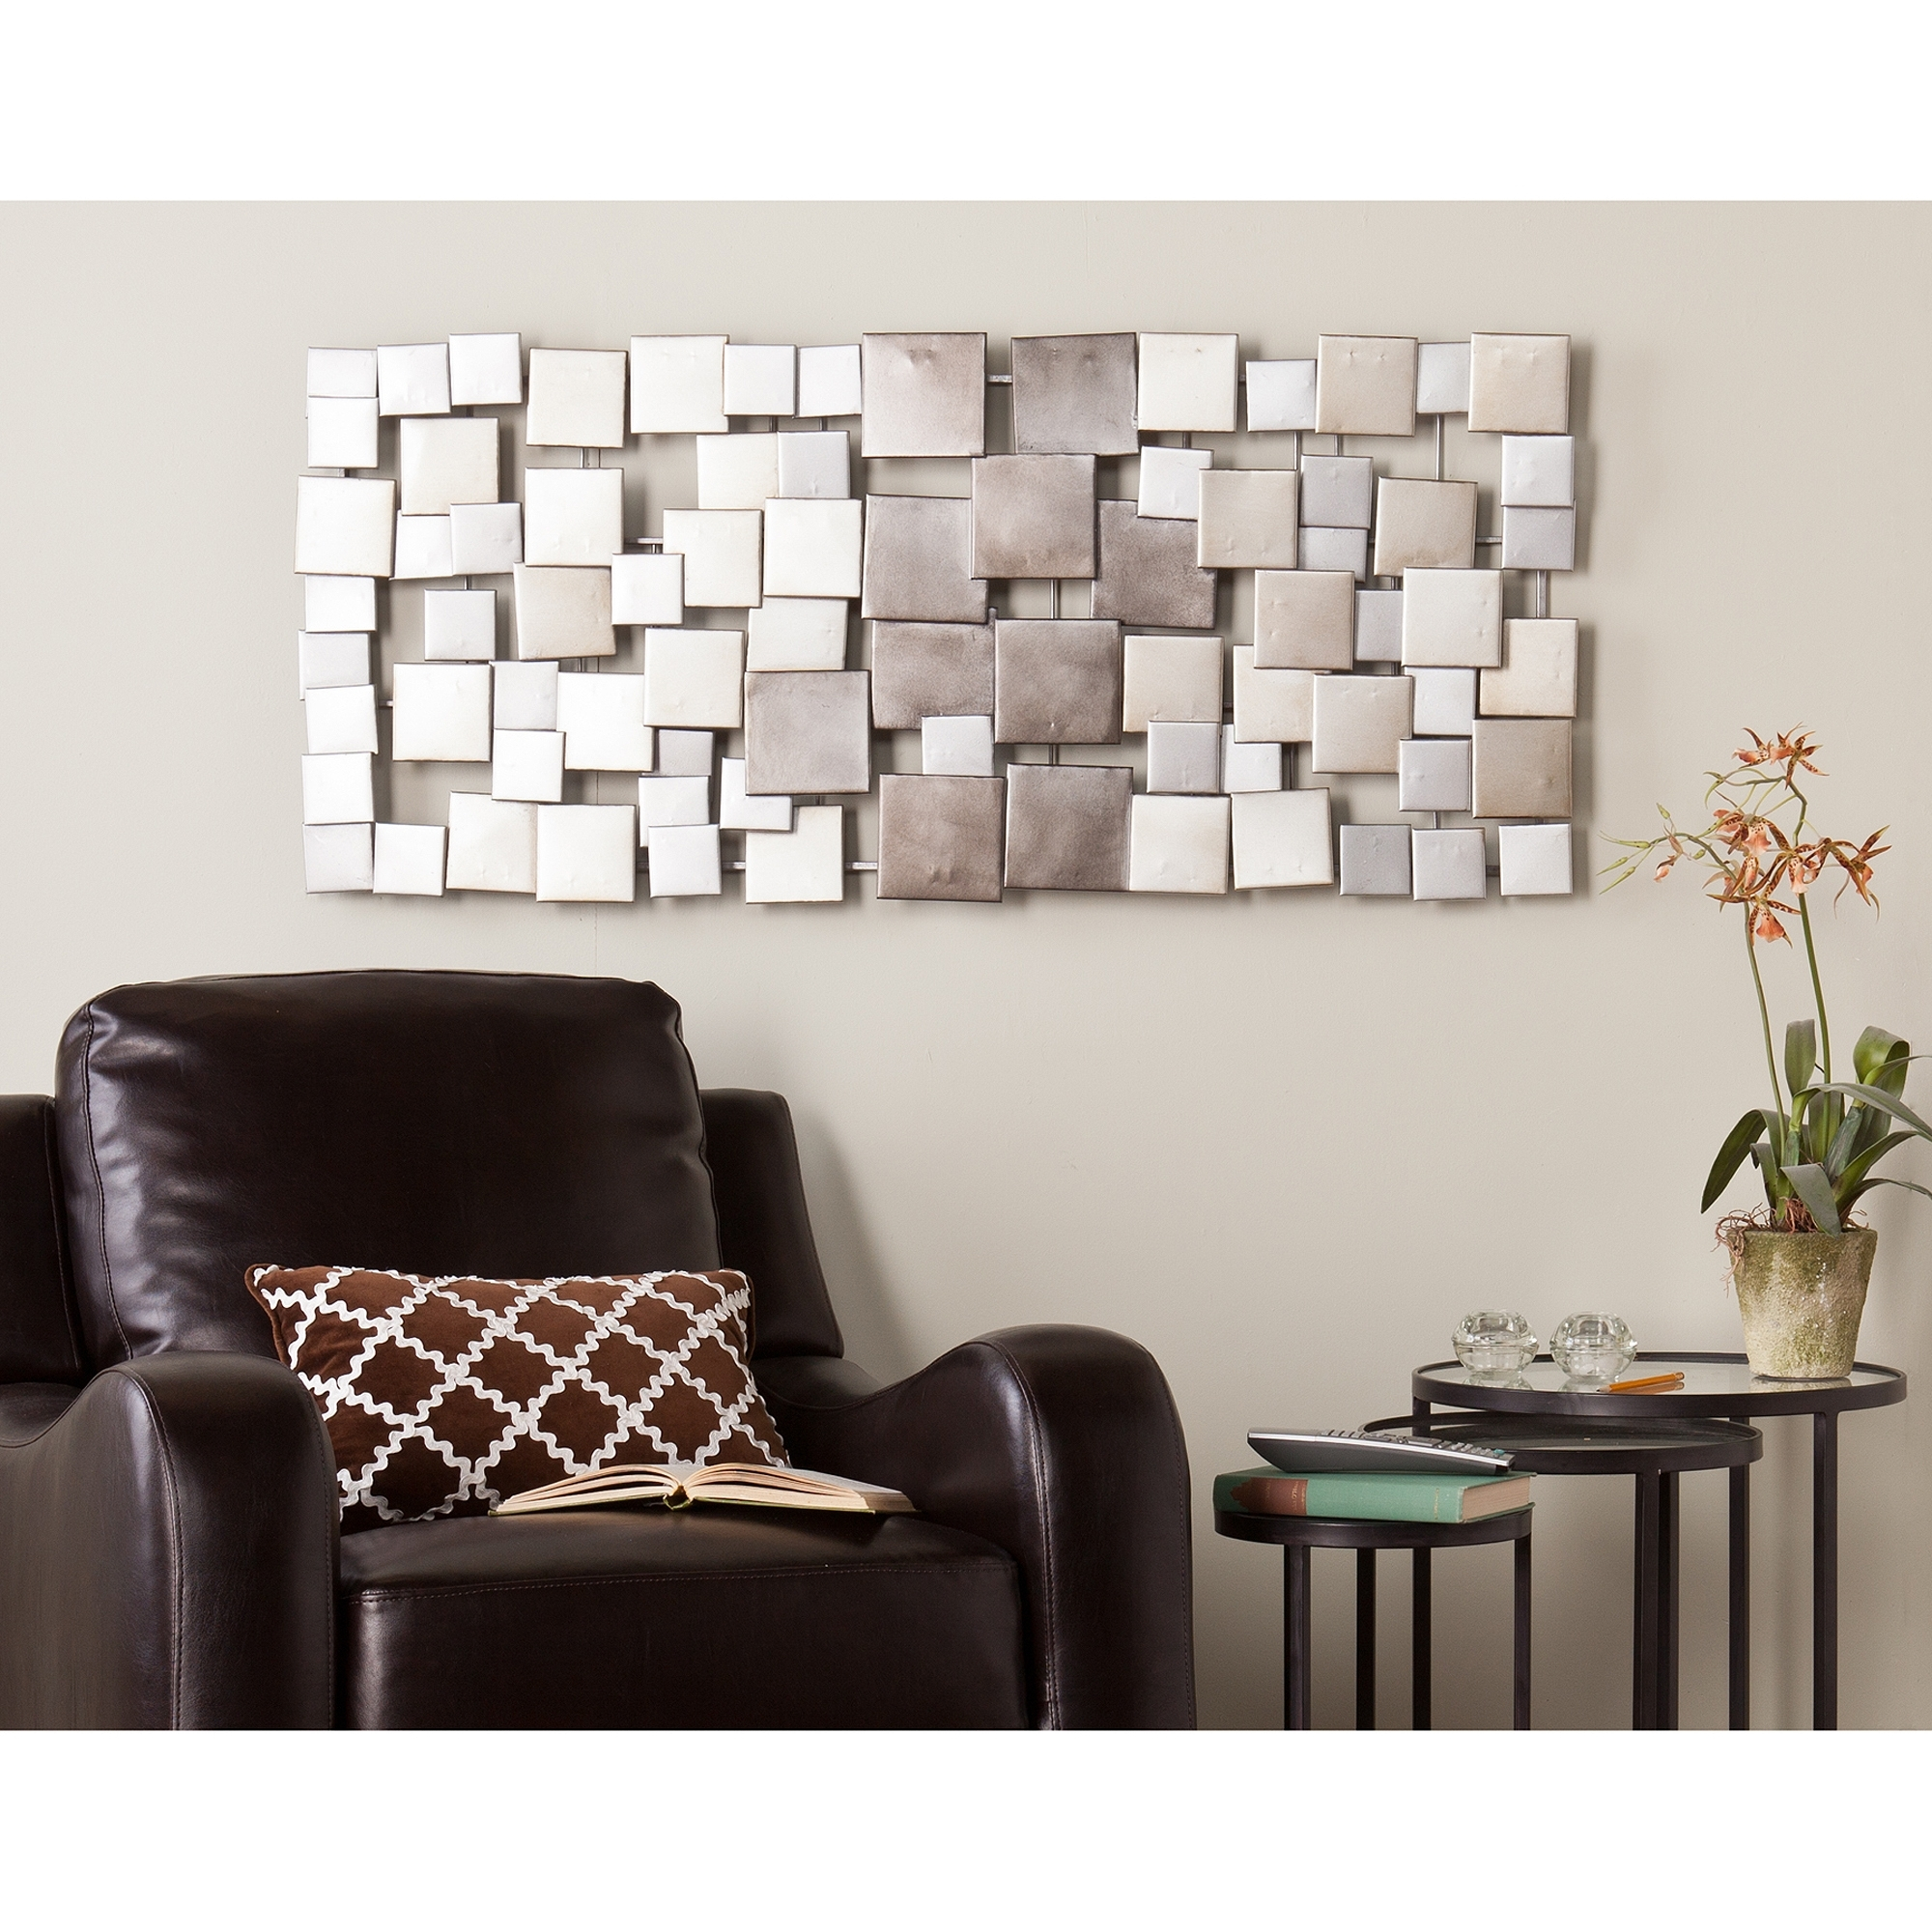 Metal Wall Art – Walmart Pertaining To Most Recently Released Kingdom Abstract Metal Wall Art (View 12 of 20)